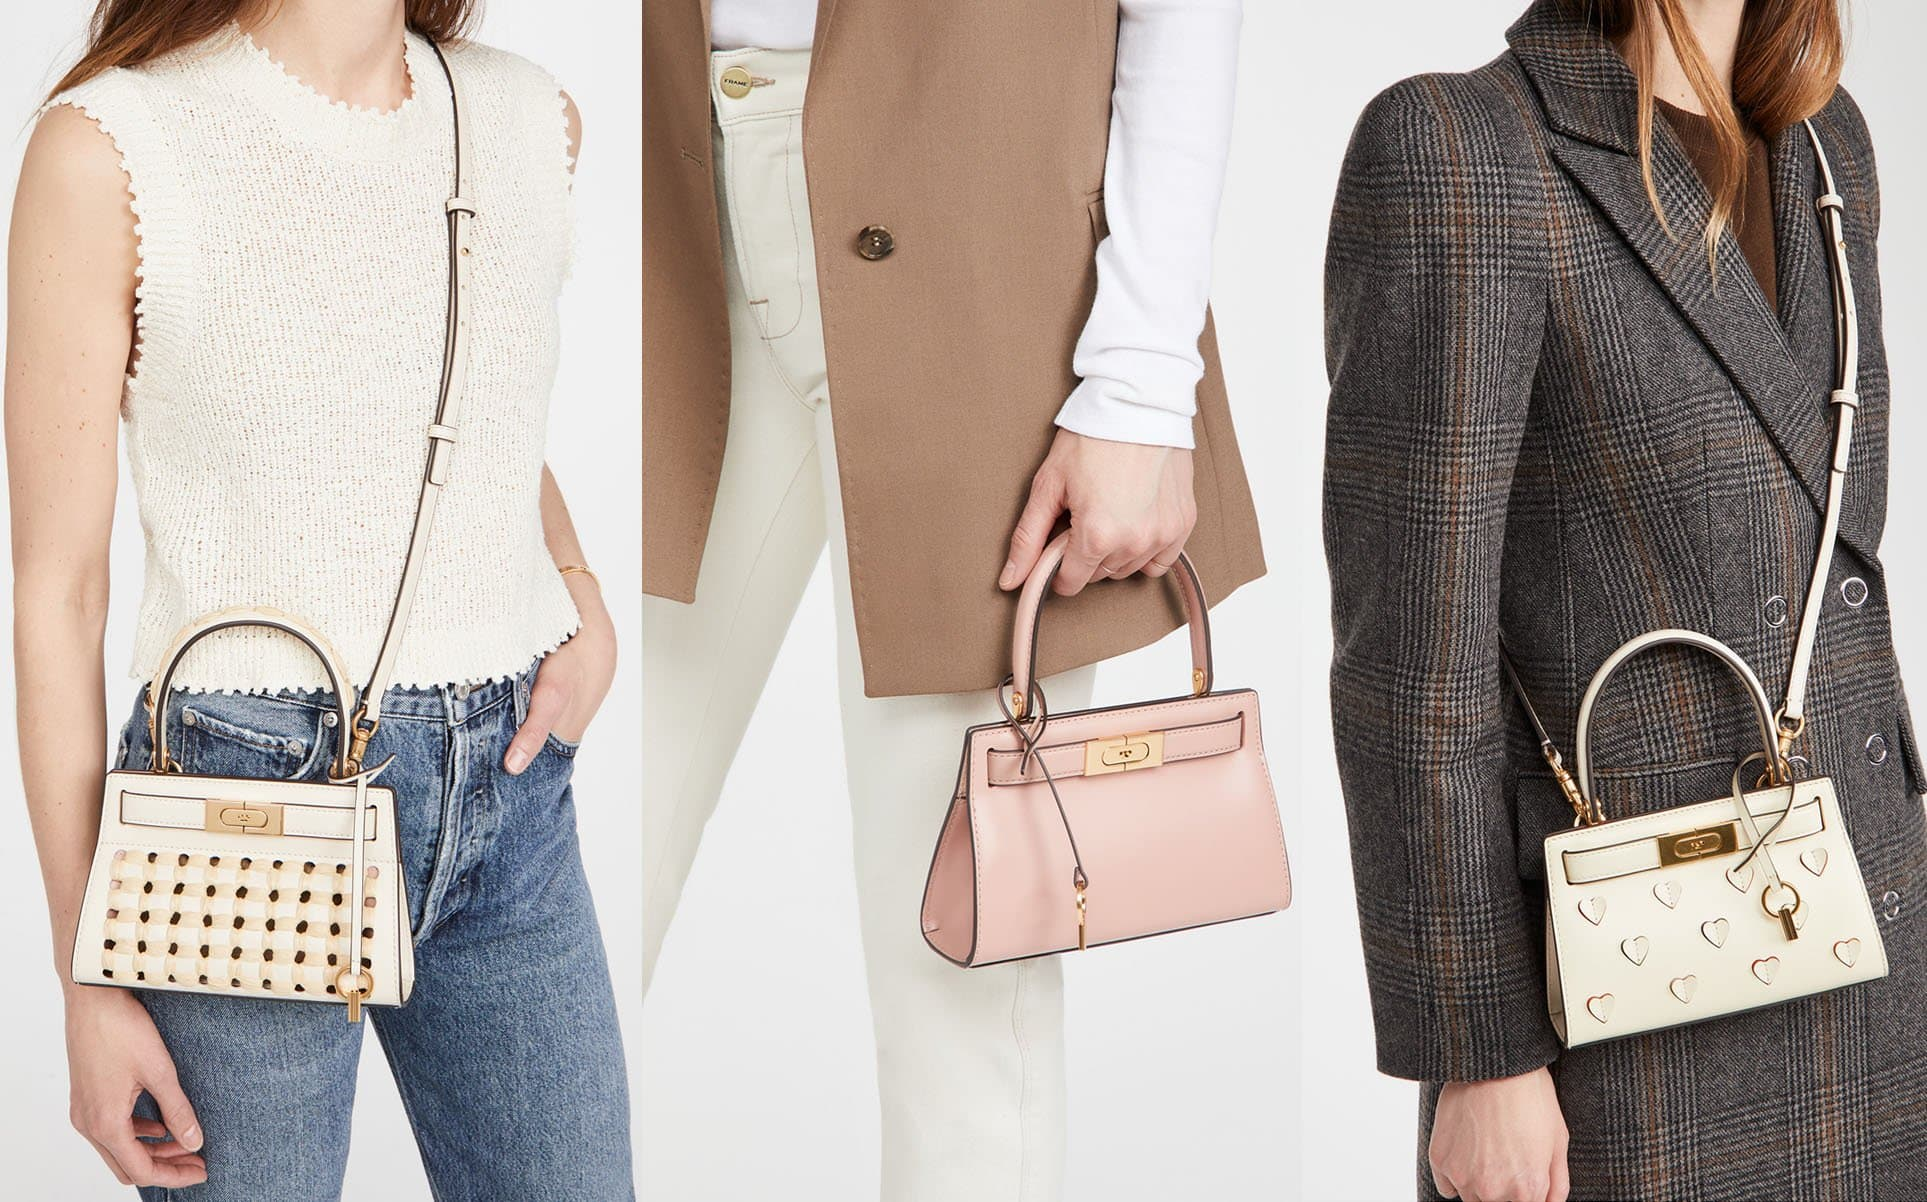 Lee Radziwill is an impeccably crafted leather bag that has the label's signature lock-and-key hardware